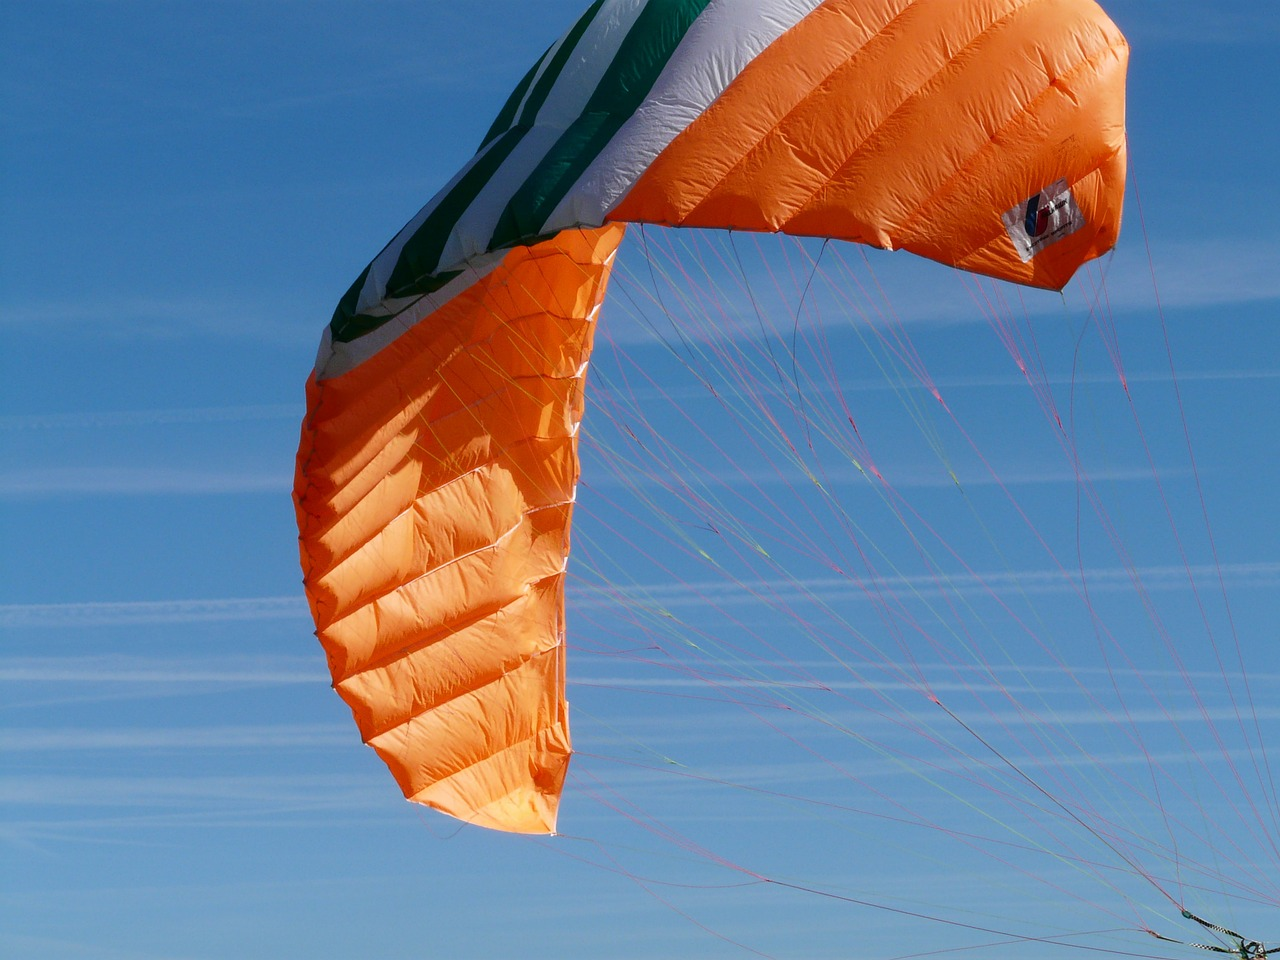 paragliding,air sports,orange,floating sailing,sliding gliding,sport,colorful,gaudy,sky,free pictures, free photos, free images, royalty free, free illustrations, public domain